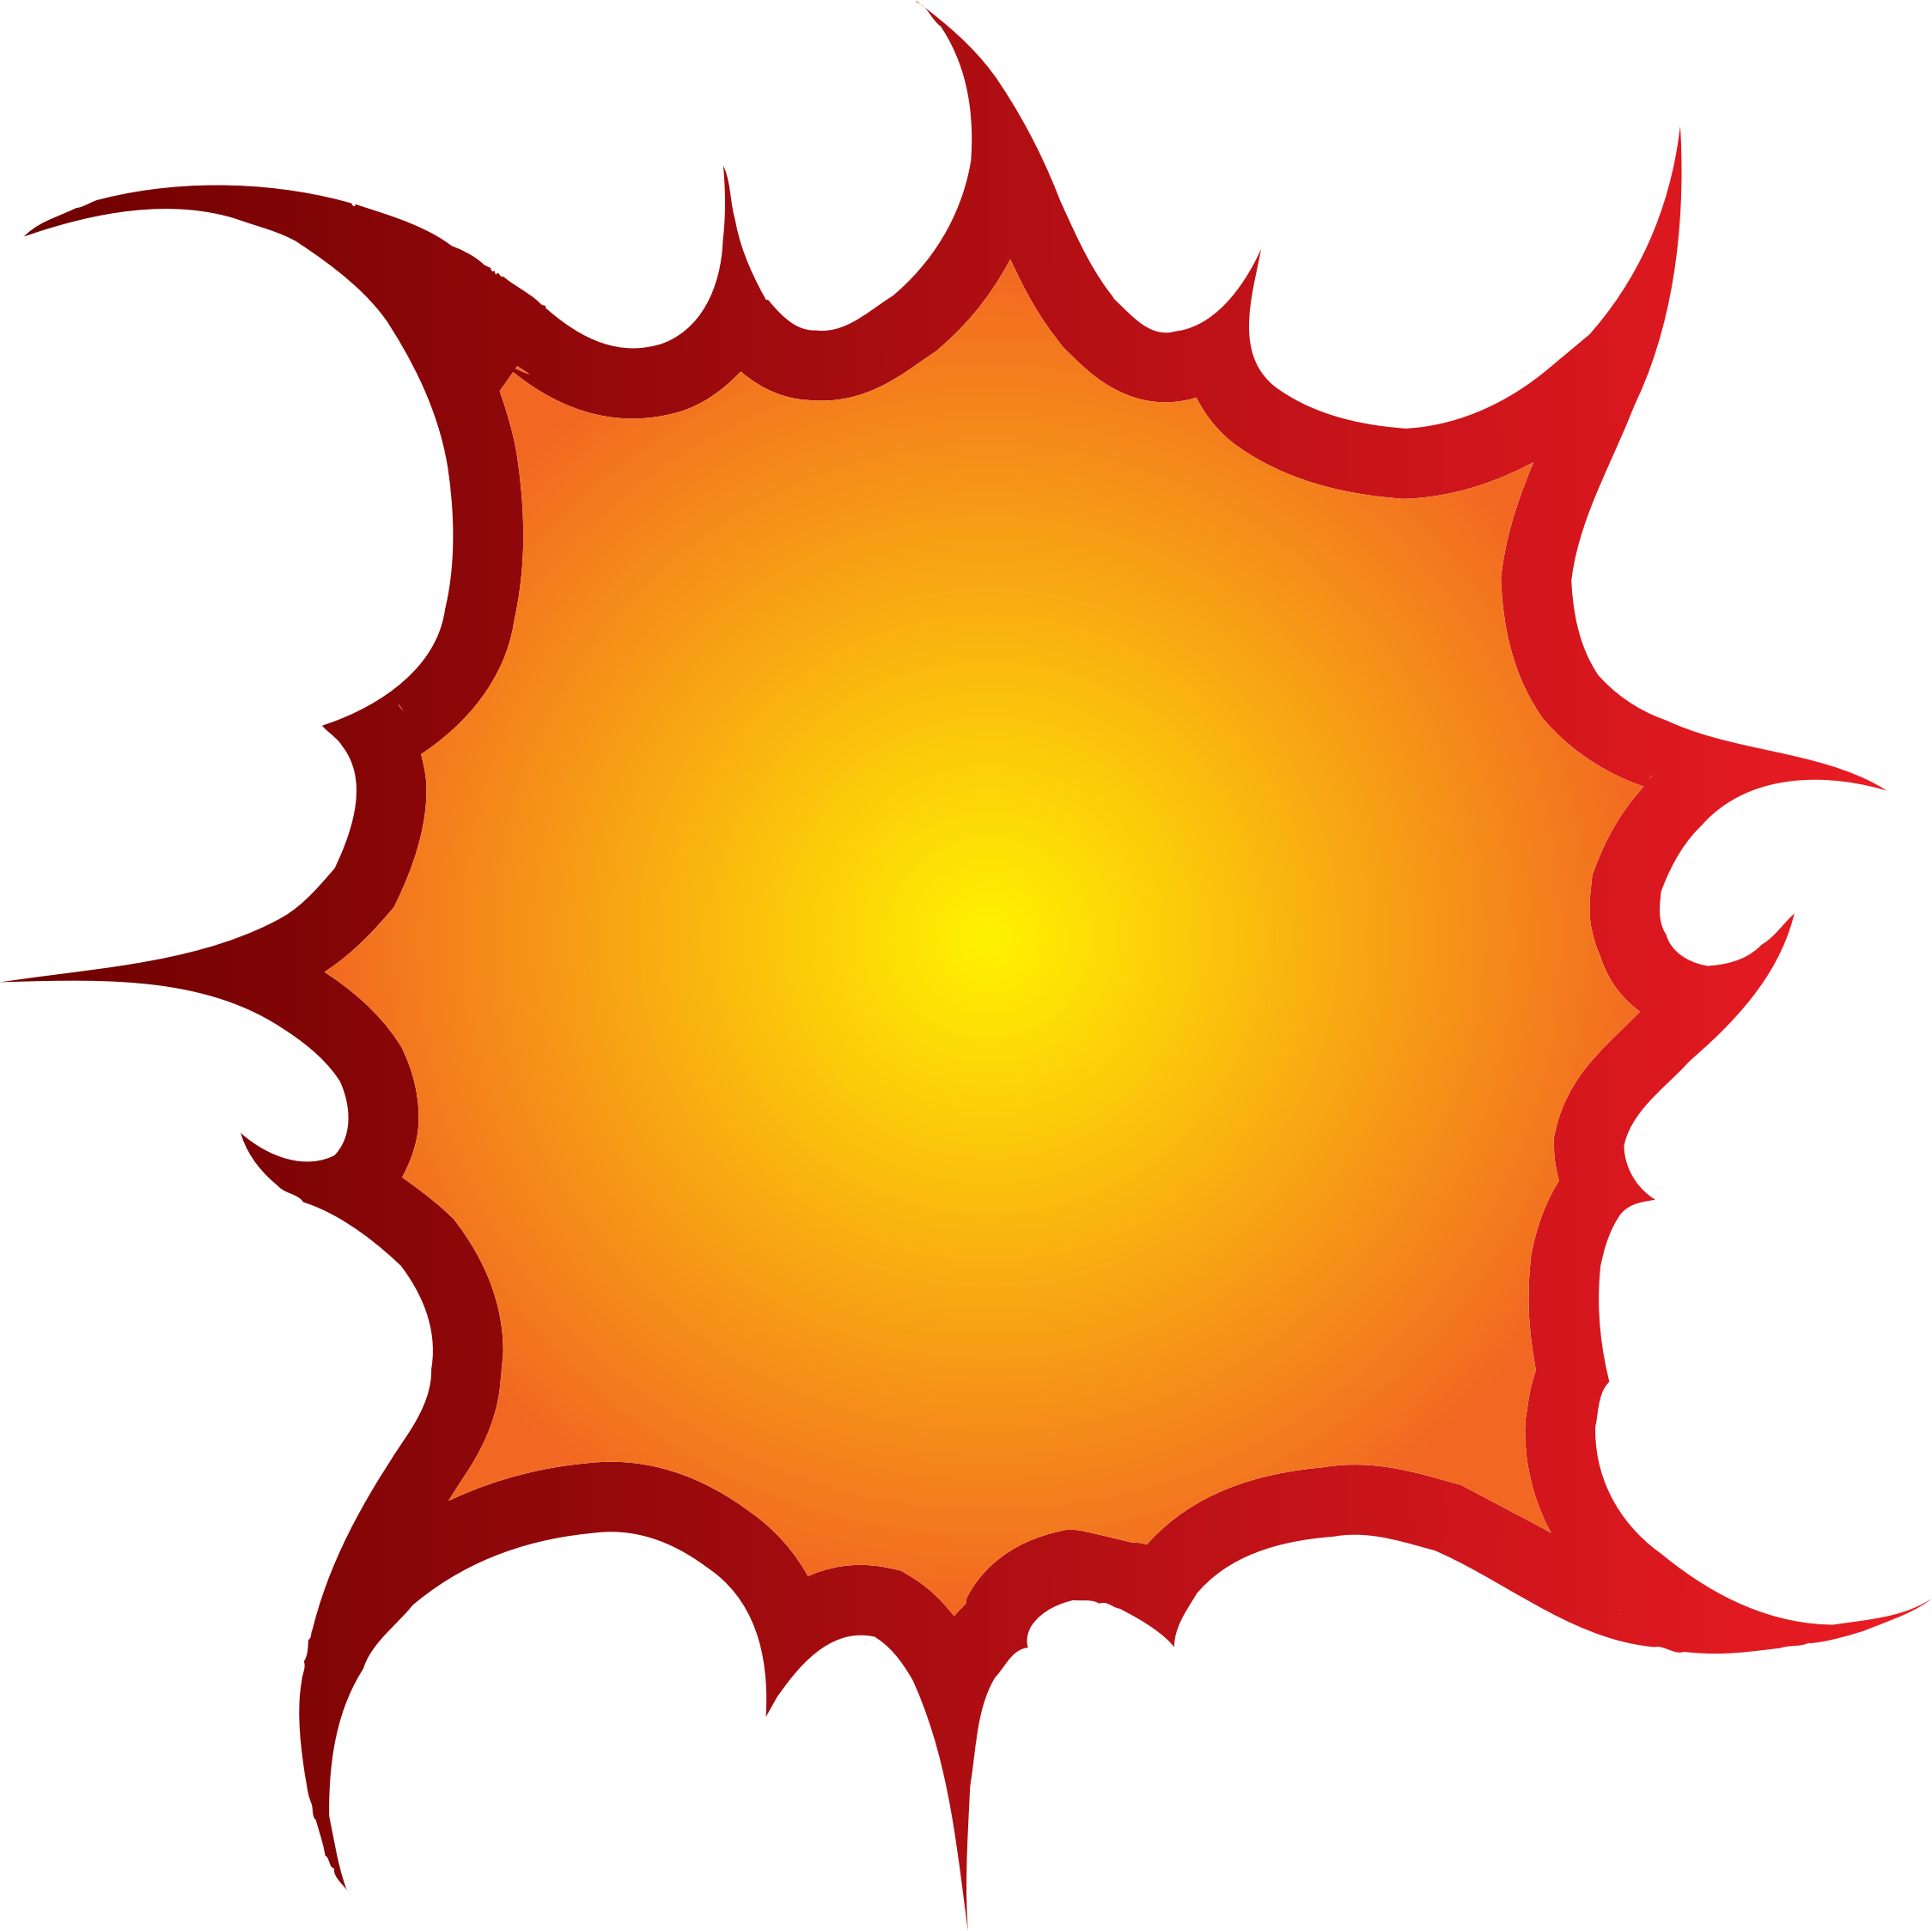 image for free explosion 26 clip art explosion clip art free rh pinterest ca explosion bubble clip art clip art explosion black women